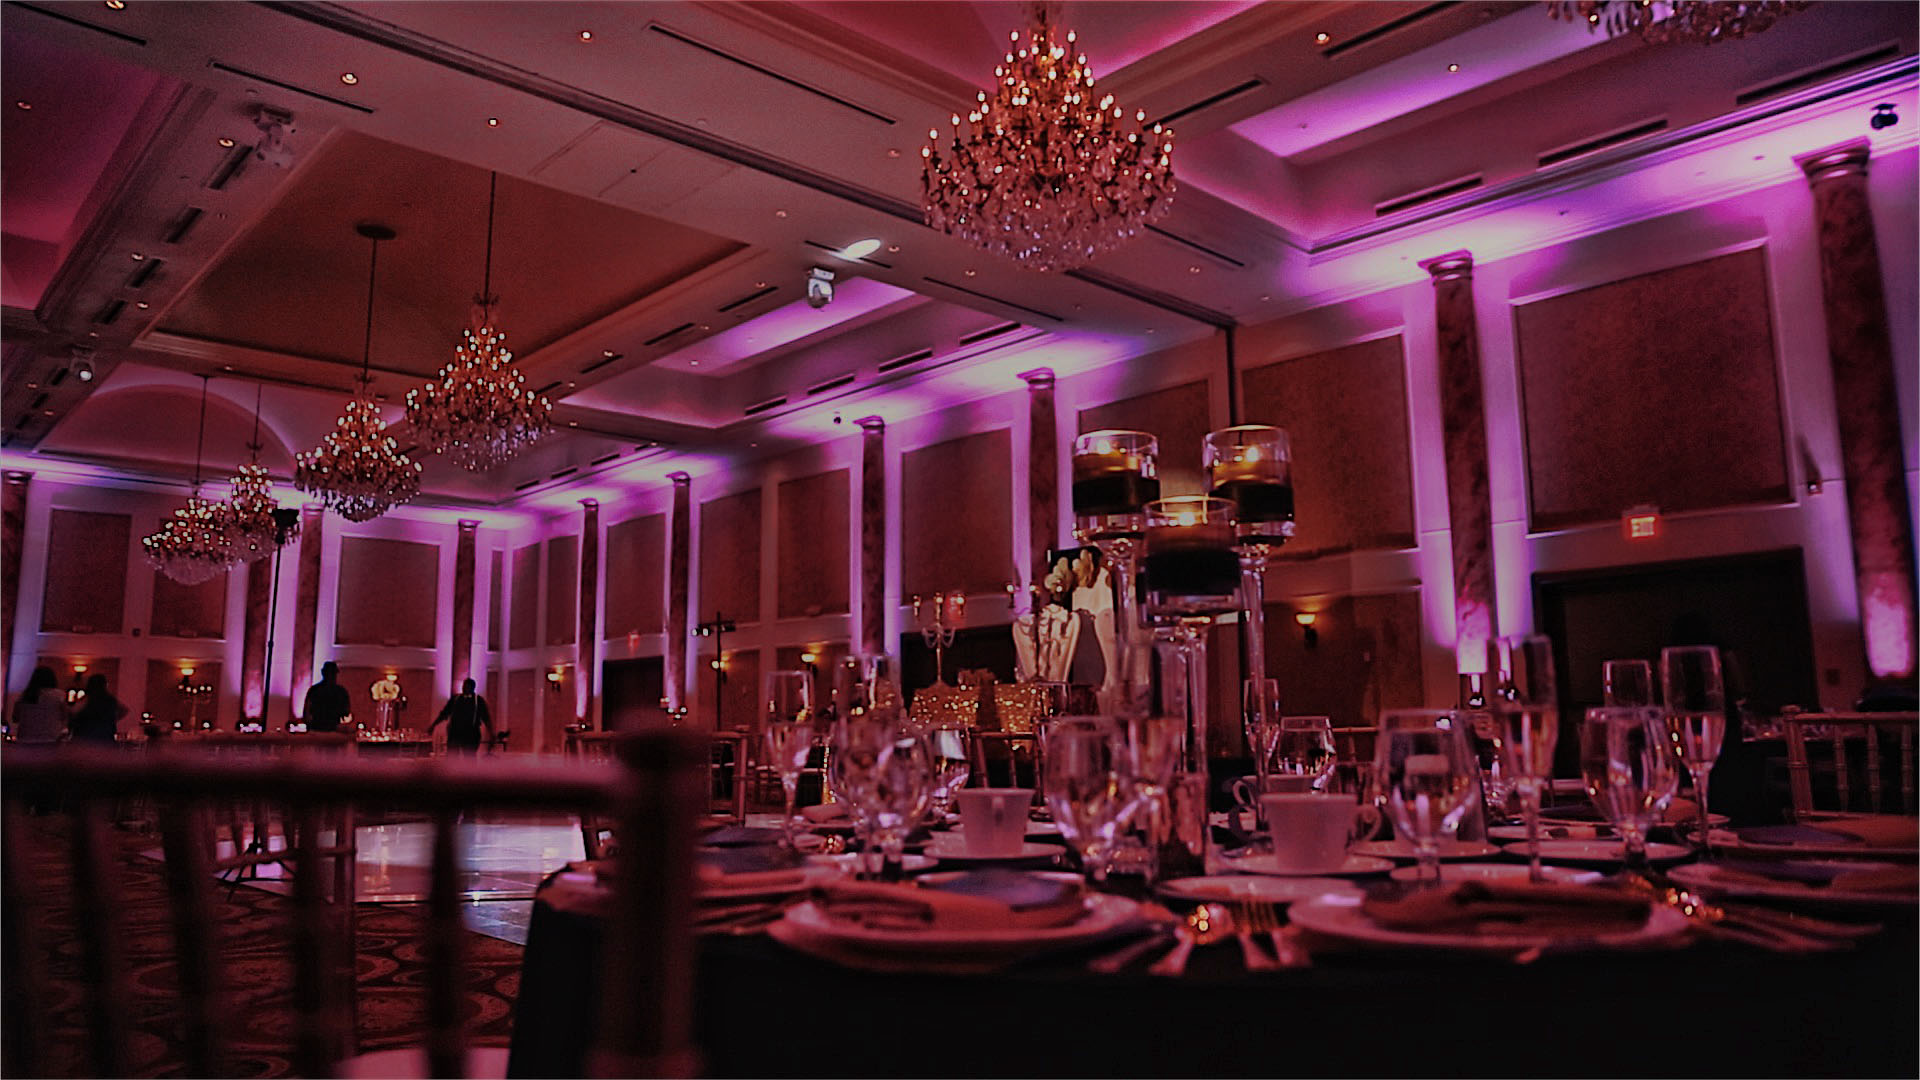 Yamean Studios Films Luxury Wedding Videography Cinematography The Merion